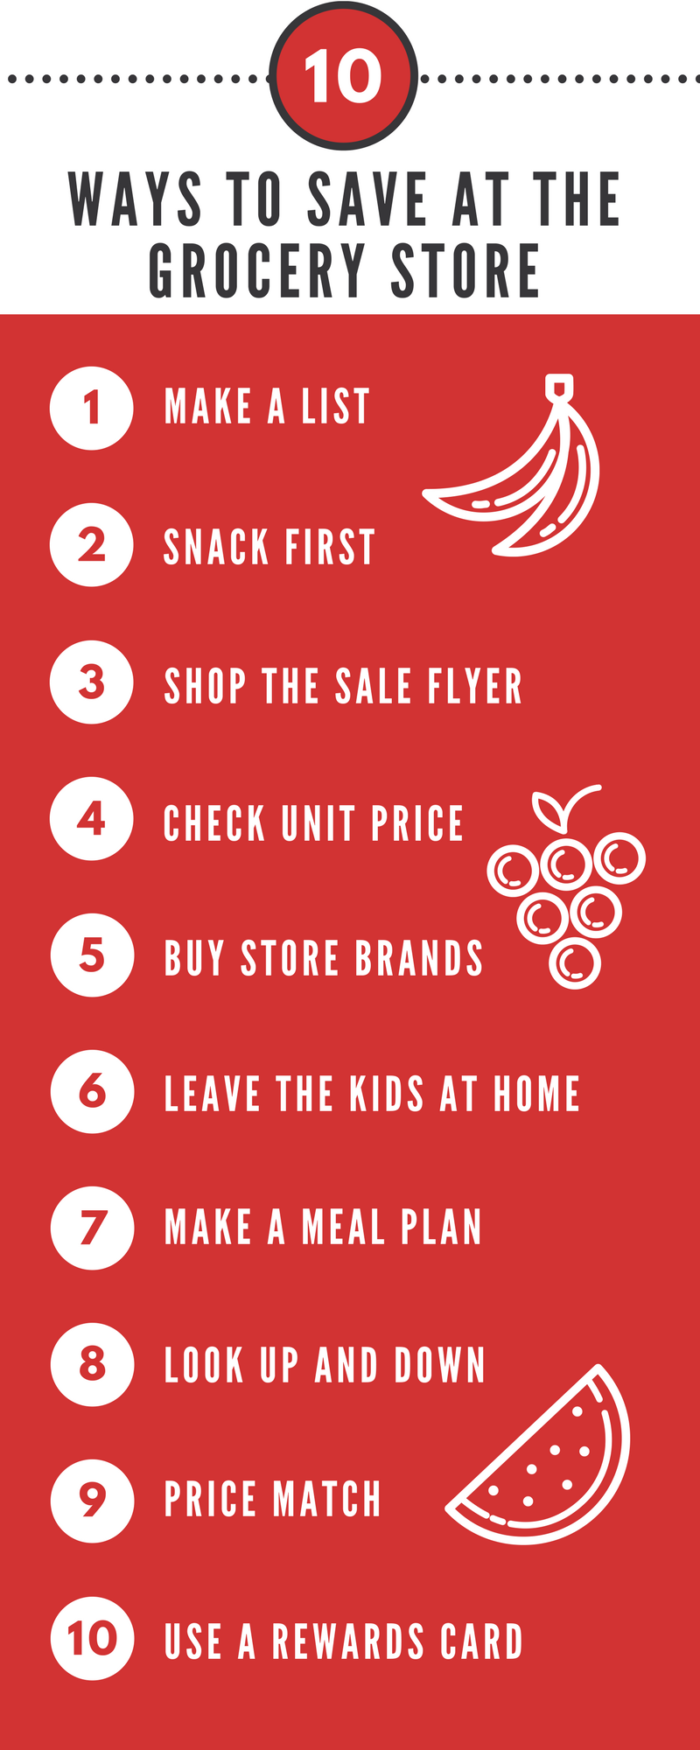 10 CLEVER WAYS TO SAVE AT THE GROCERY STORE